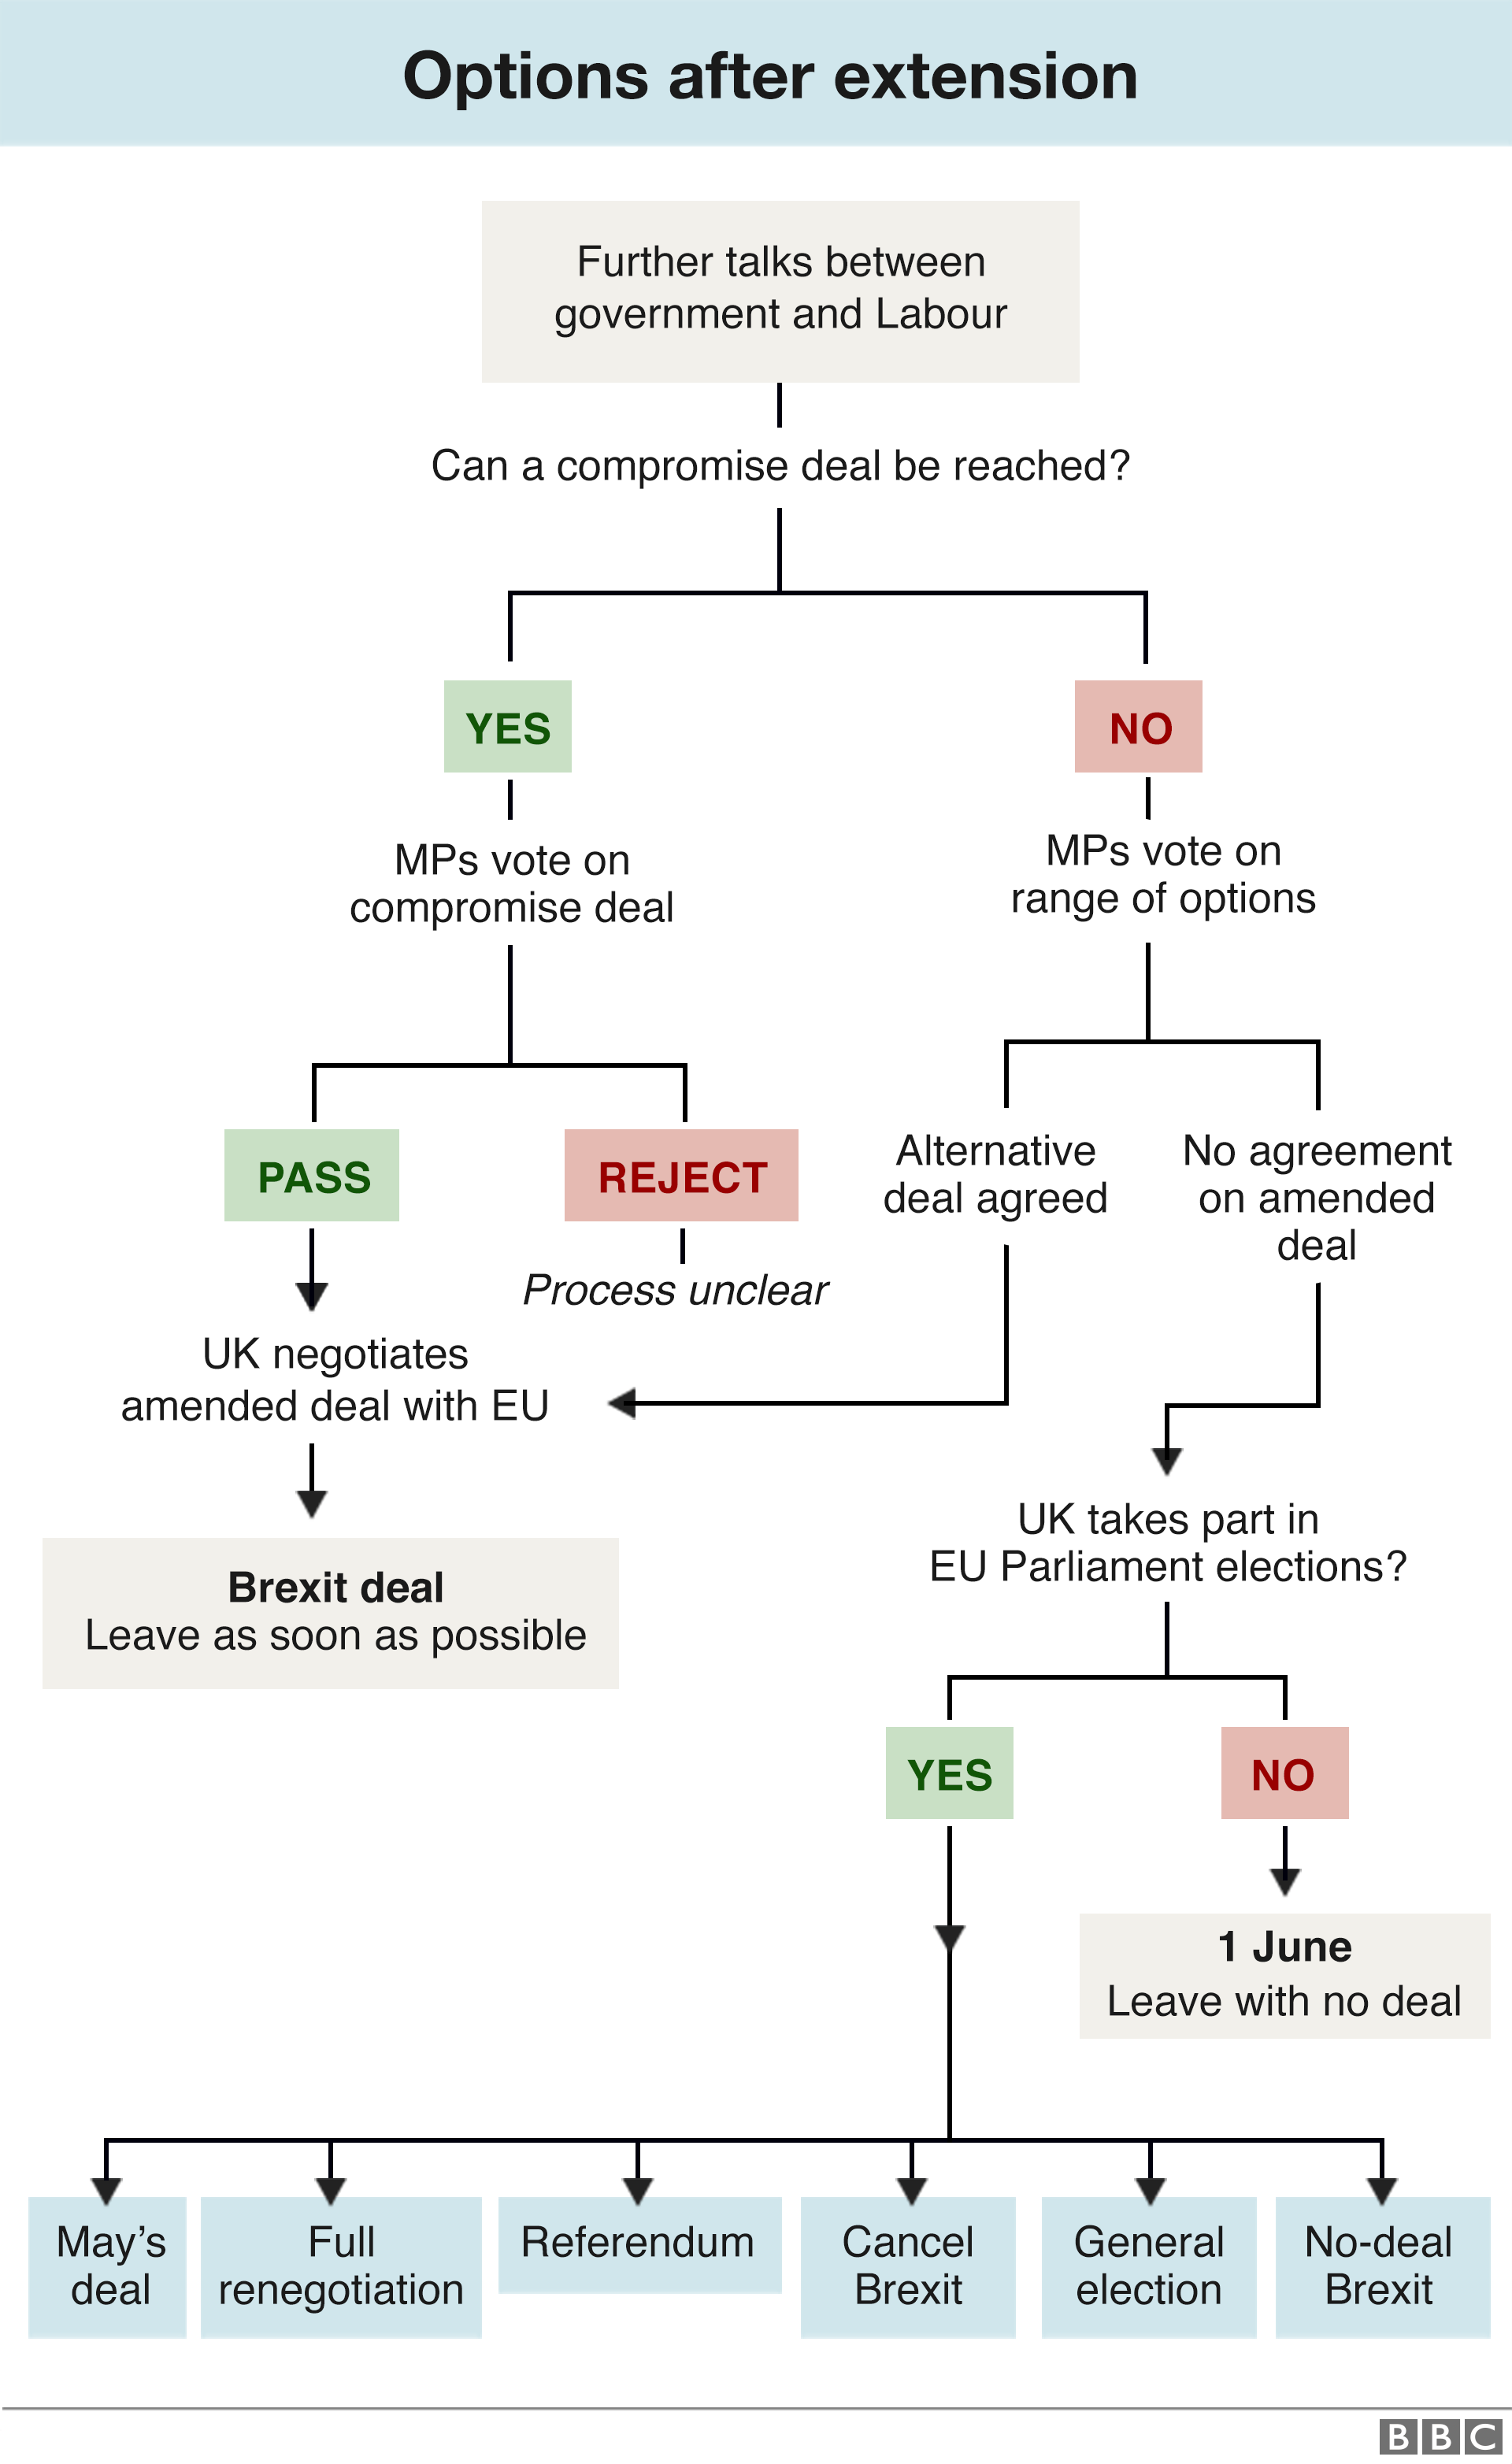 A flowchart showing Britain's options after extending the Brexit deadline to 31 October.